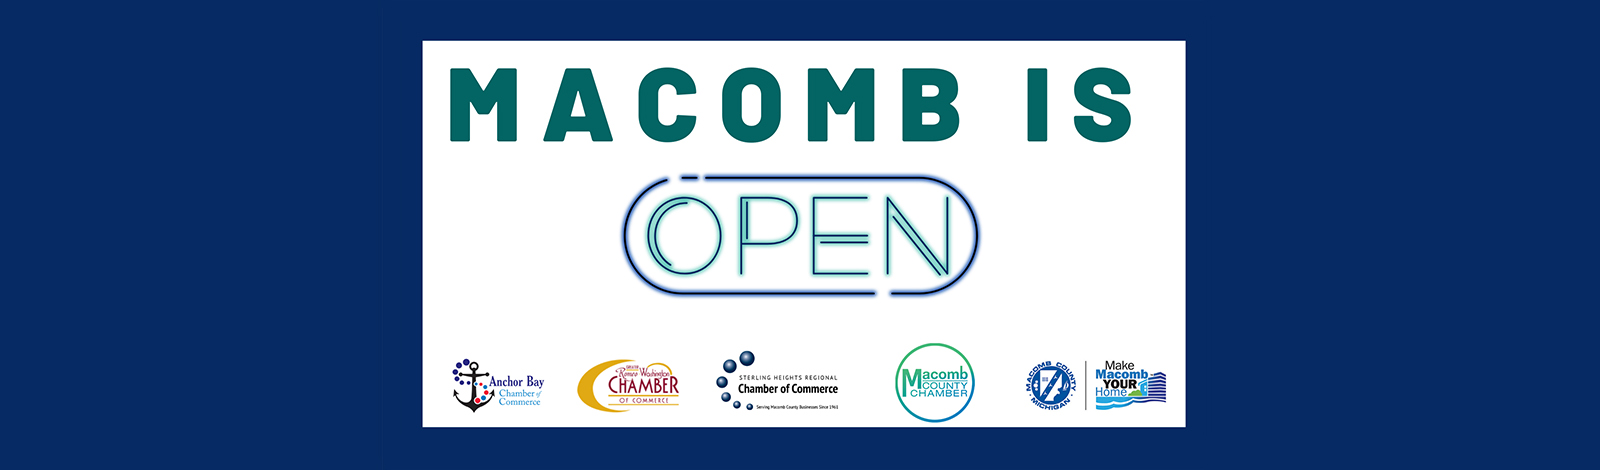 web banner macomb is open